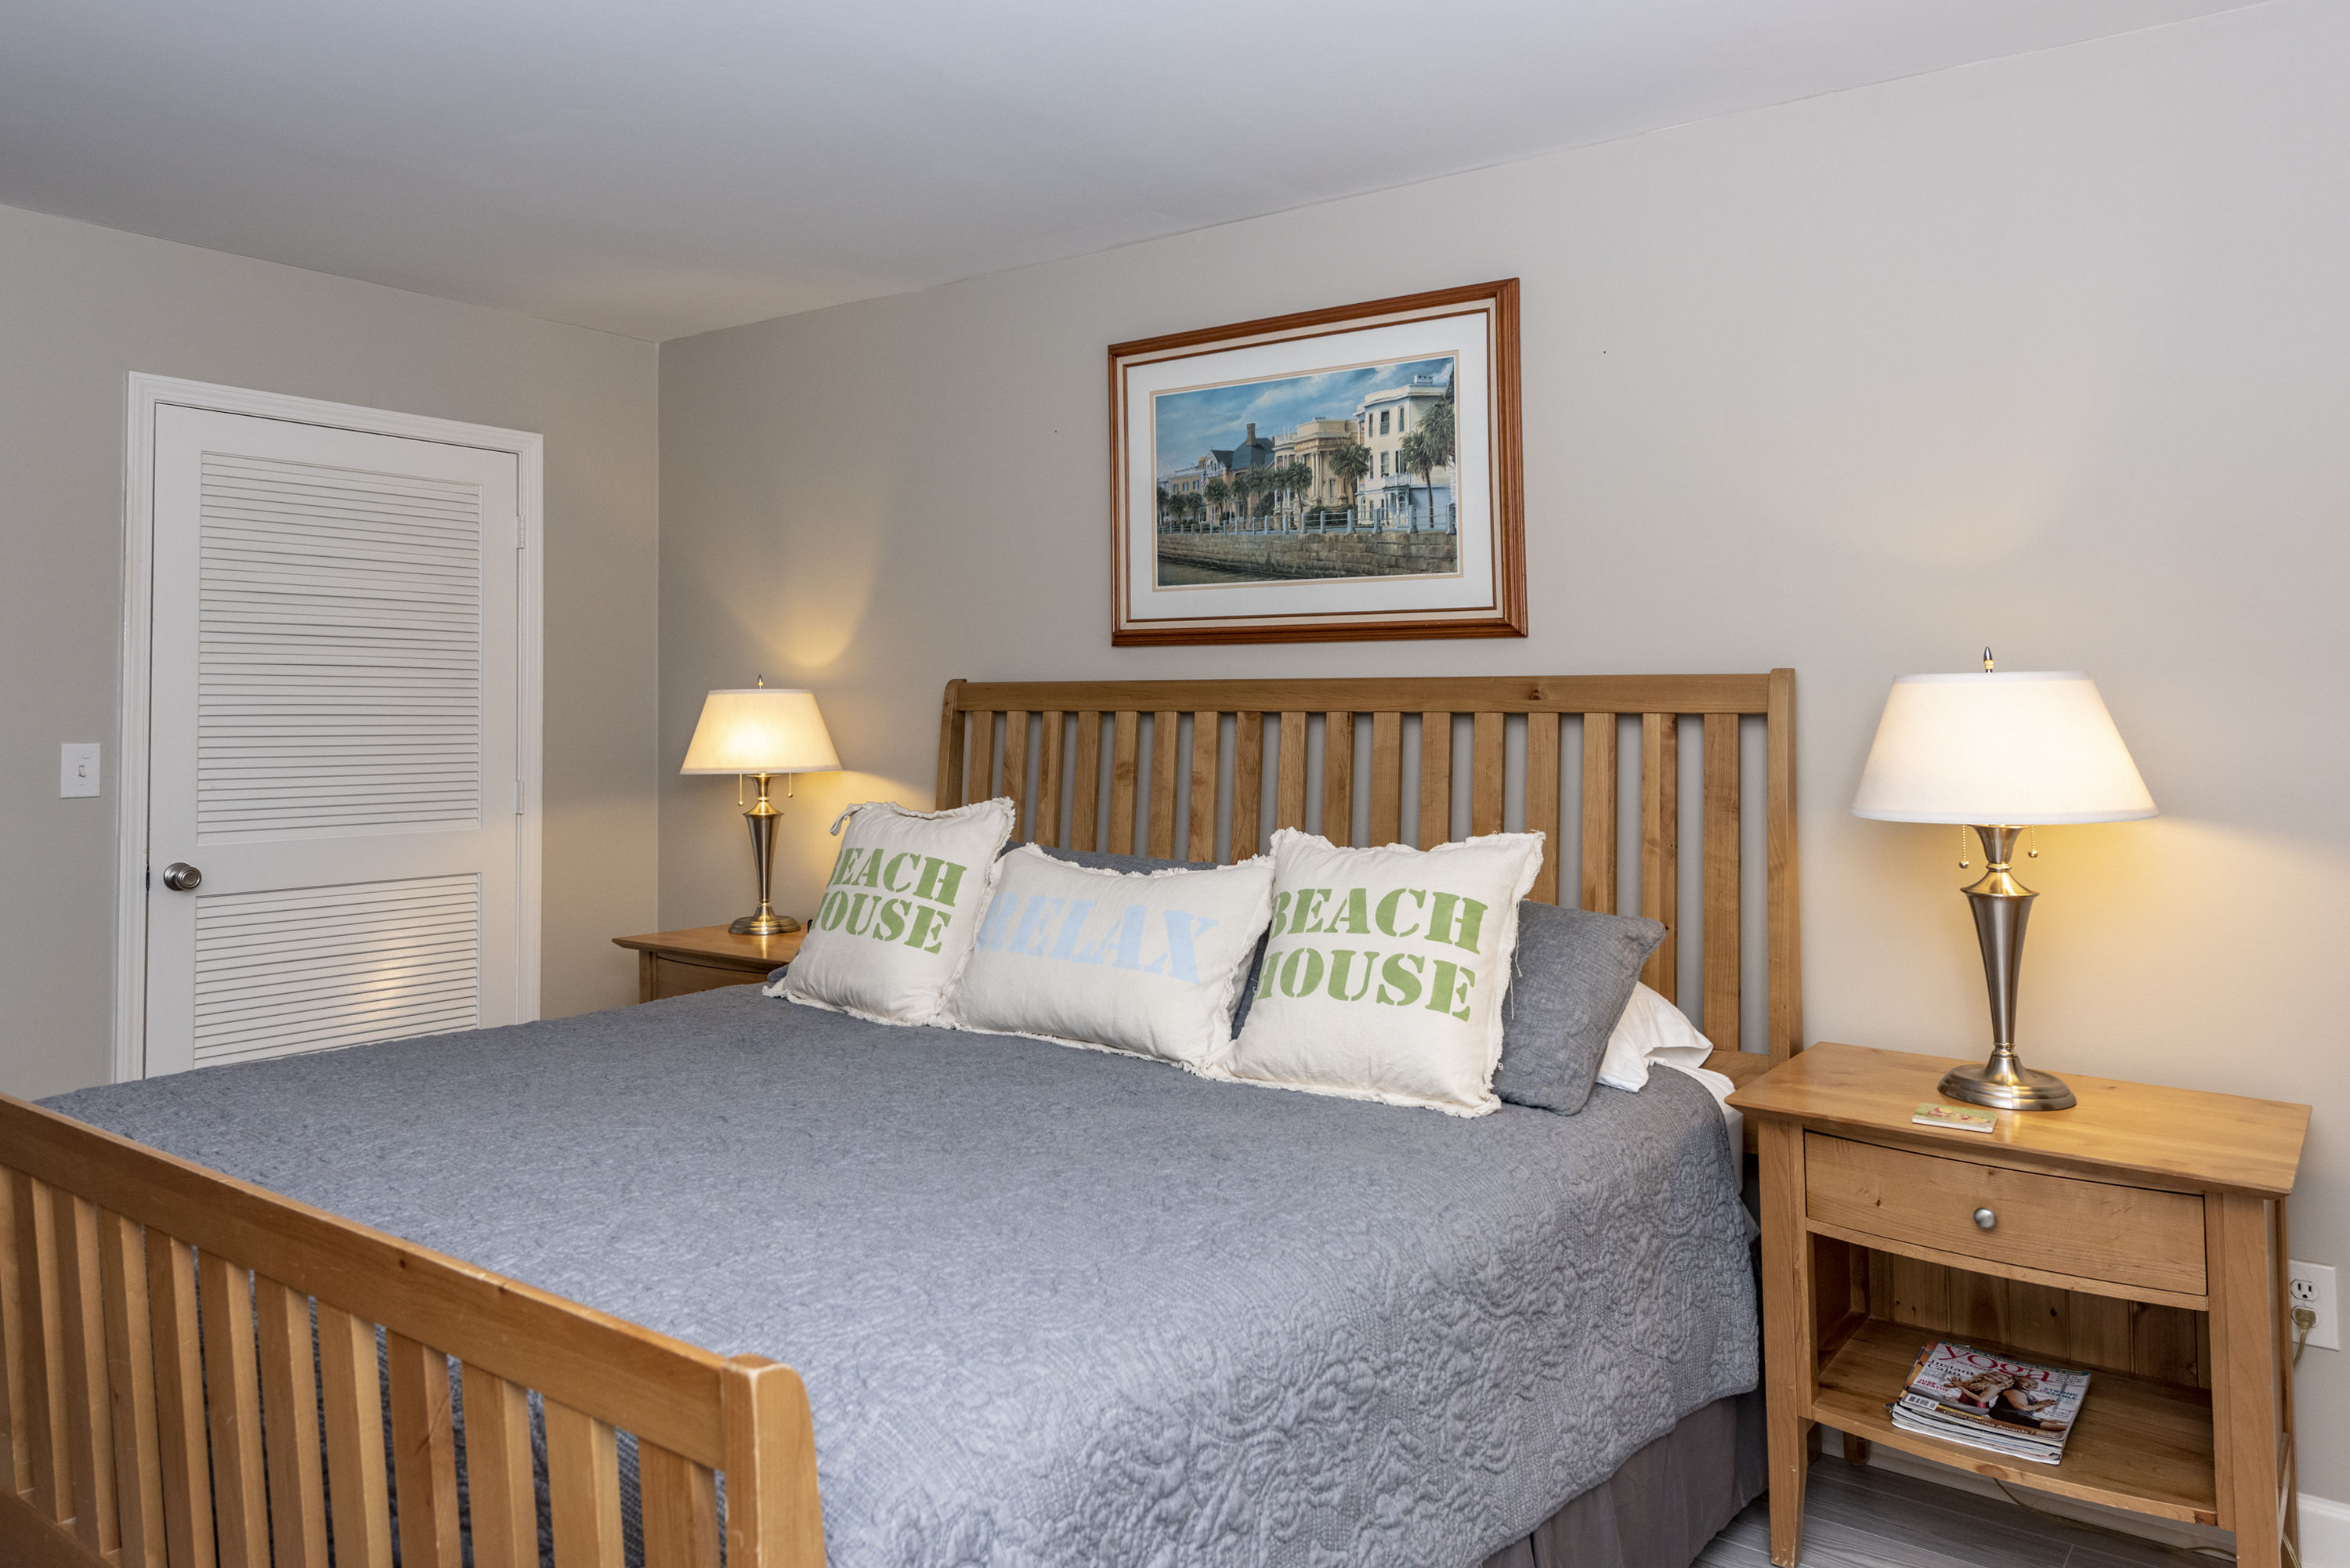 The spacious master bedroom has a king sized bed.